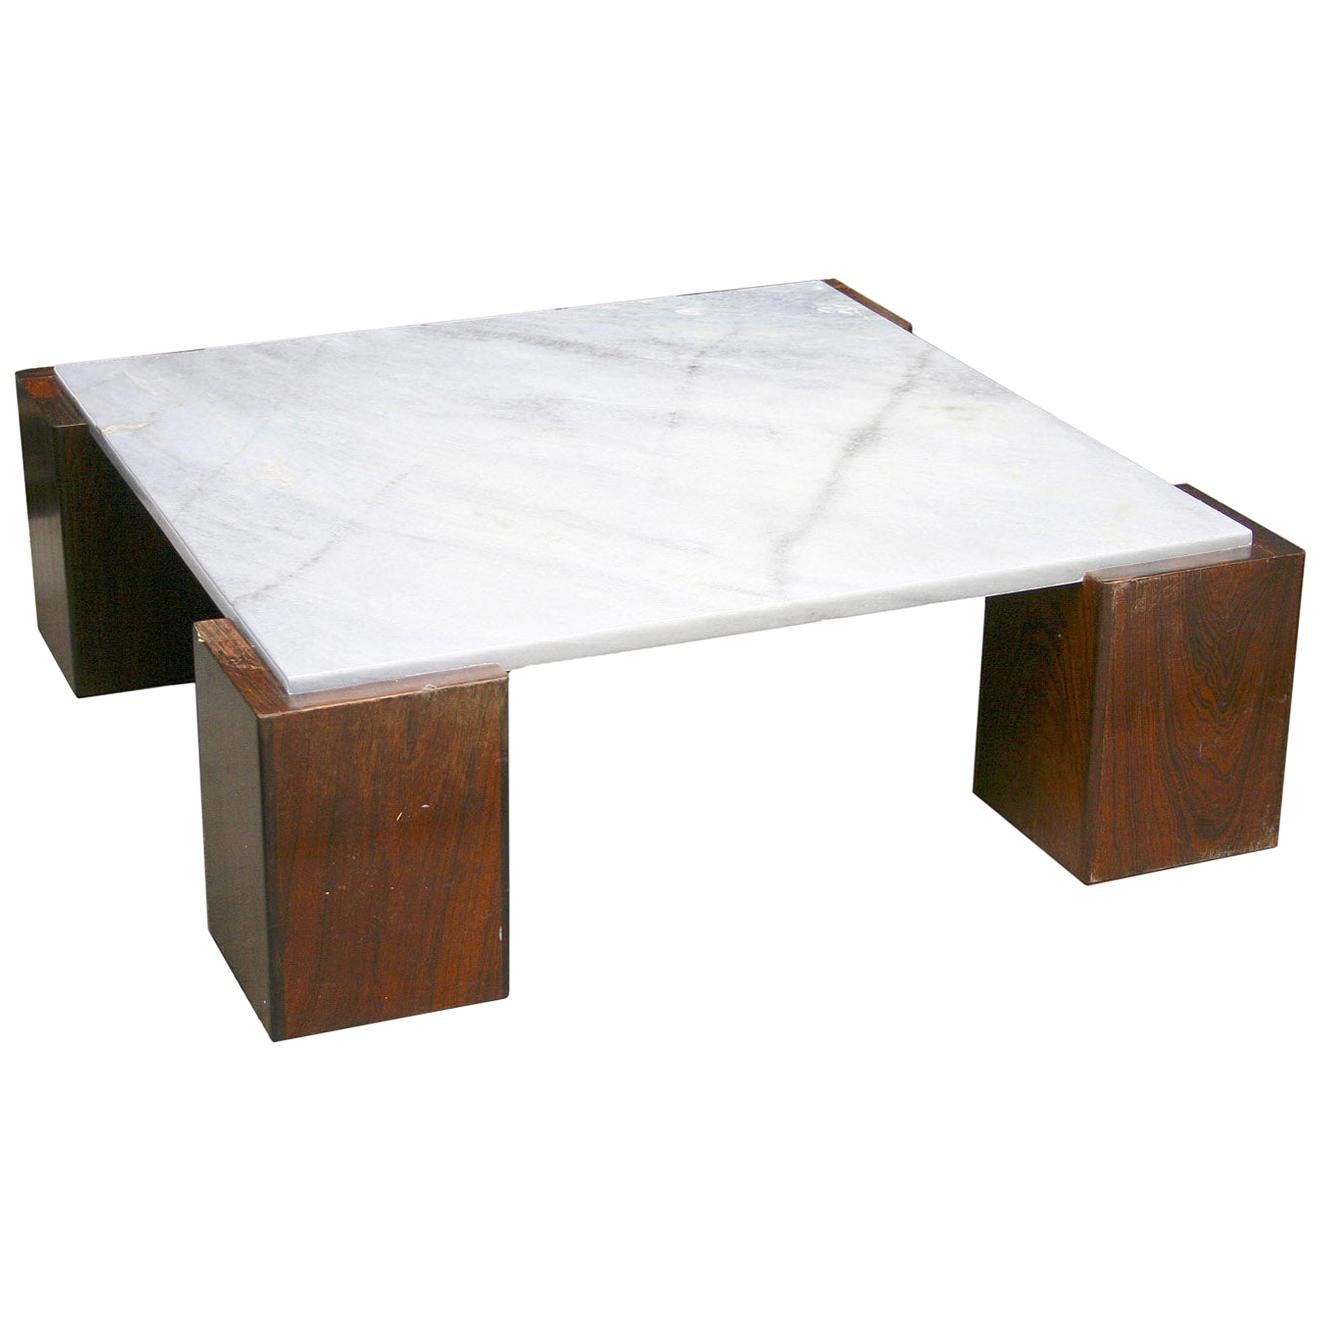 Square Coffee Table with Rosewood Legs and Marble Top, 1950s